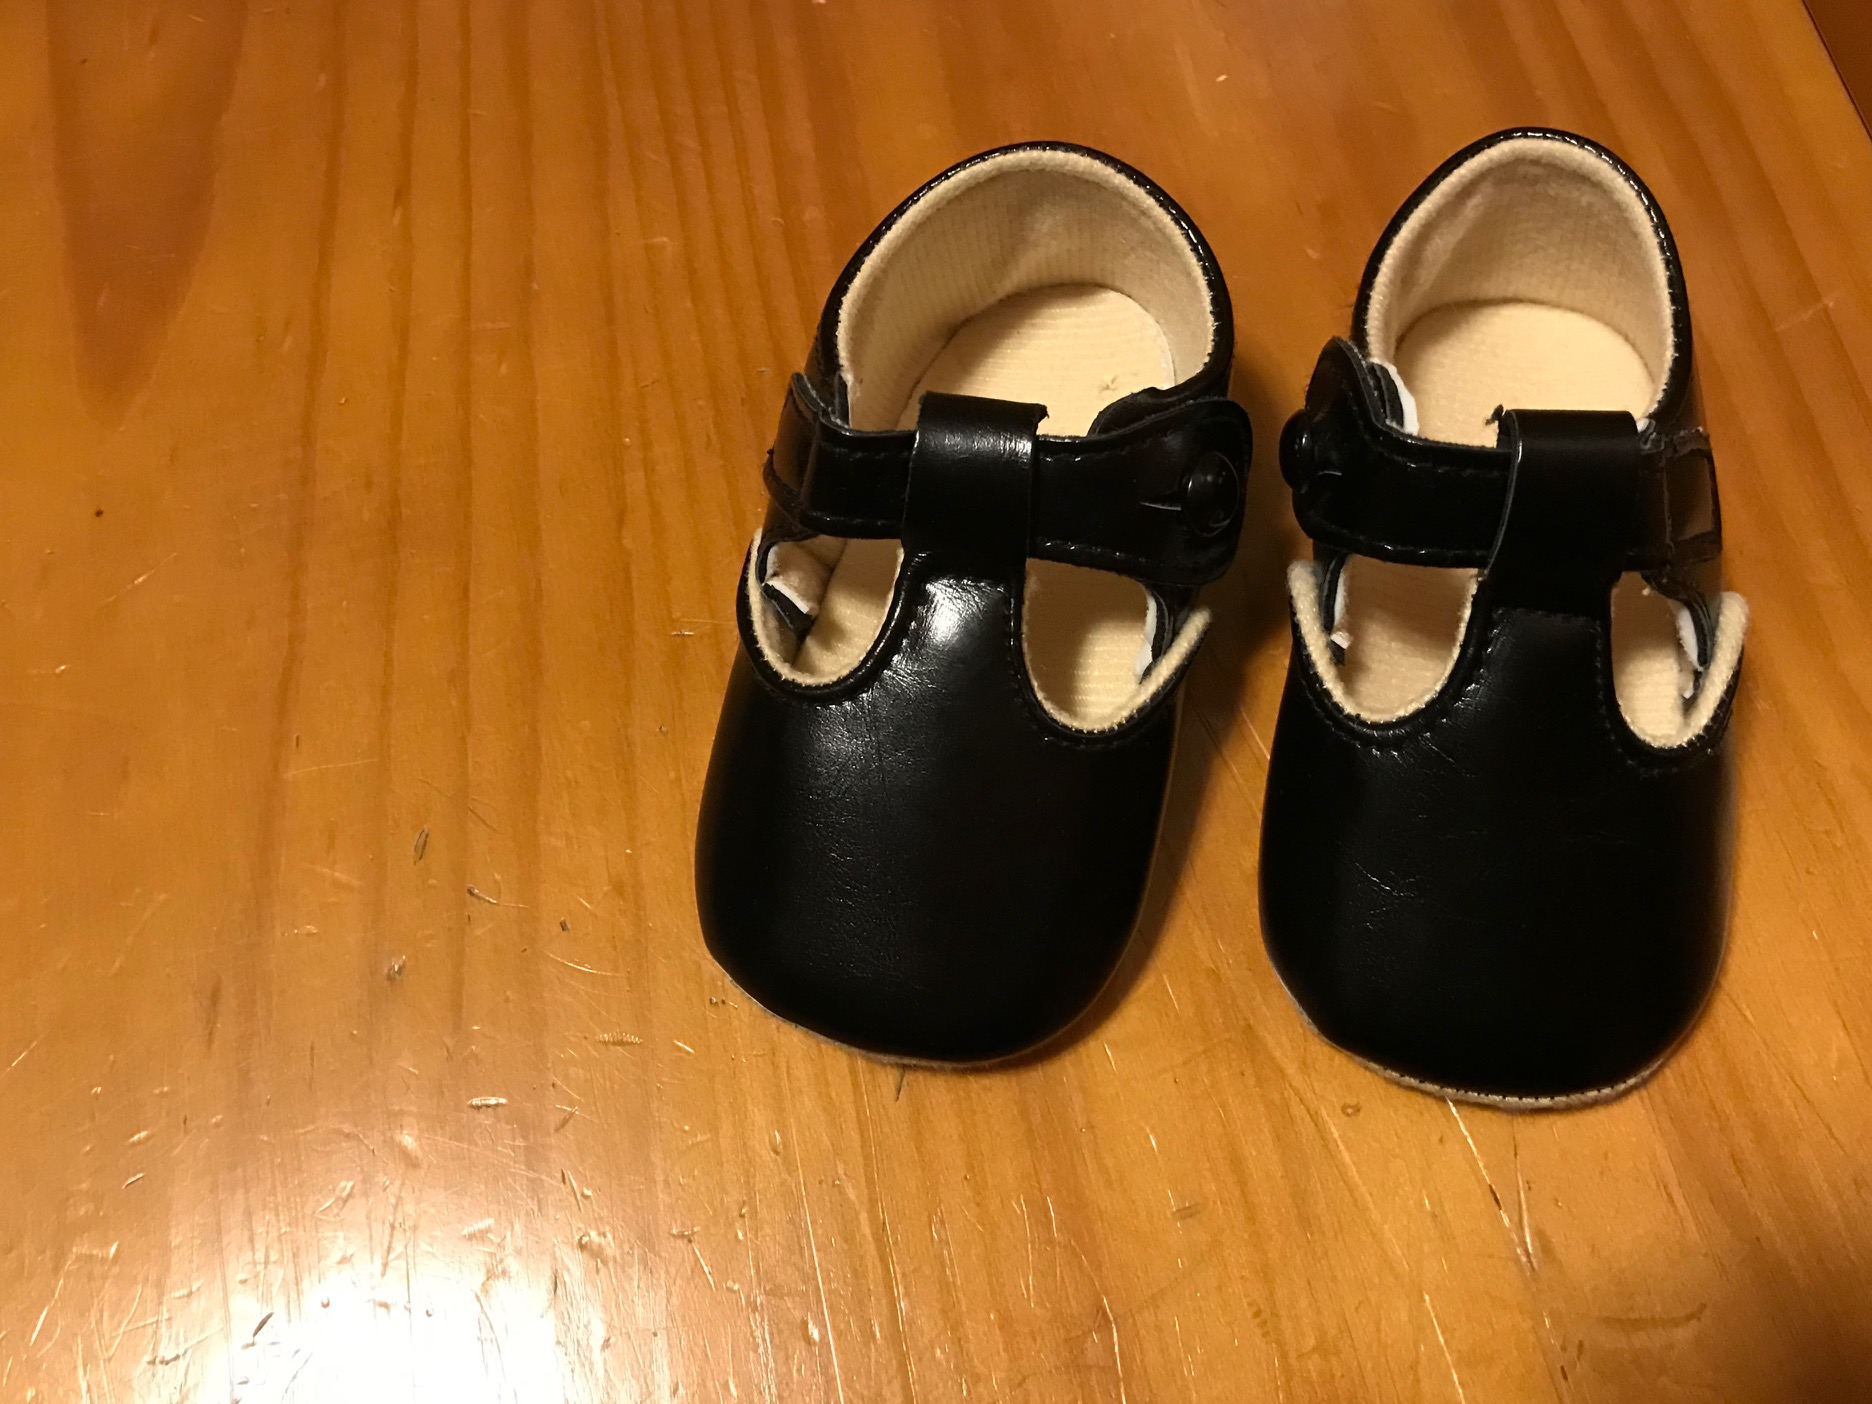 Off-Brand Faux Leather Black Button Up Baby Shoes: 3,883 ppm Lead + 51 ppm Arsenic! [90 ppm Lead is unsafe for kids]